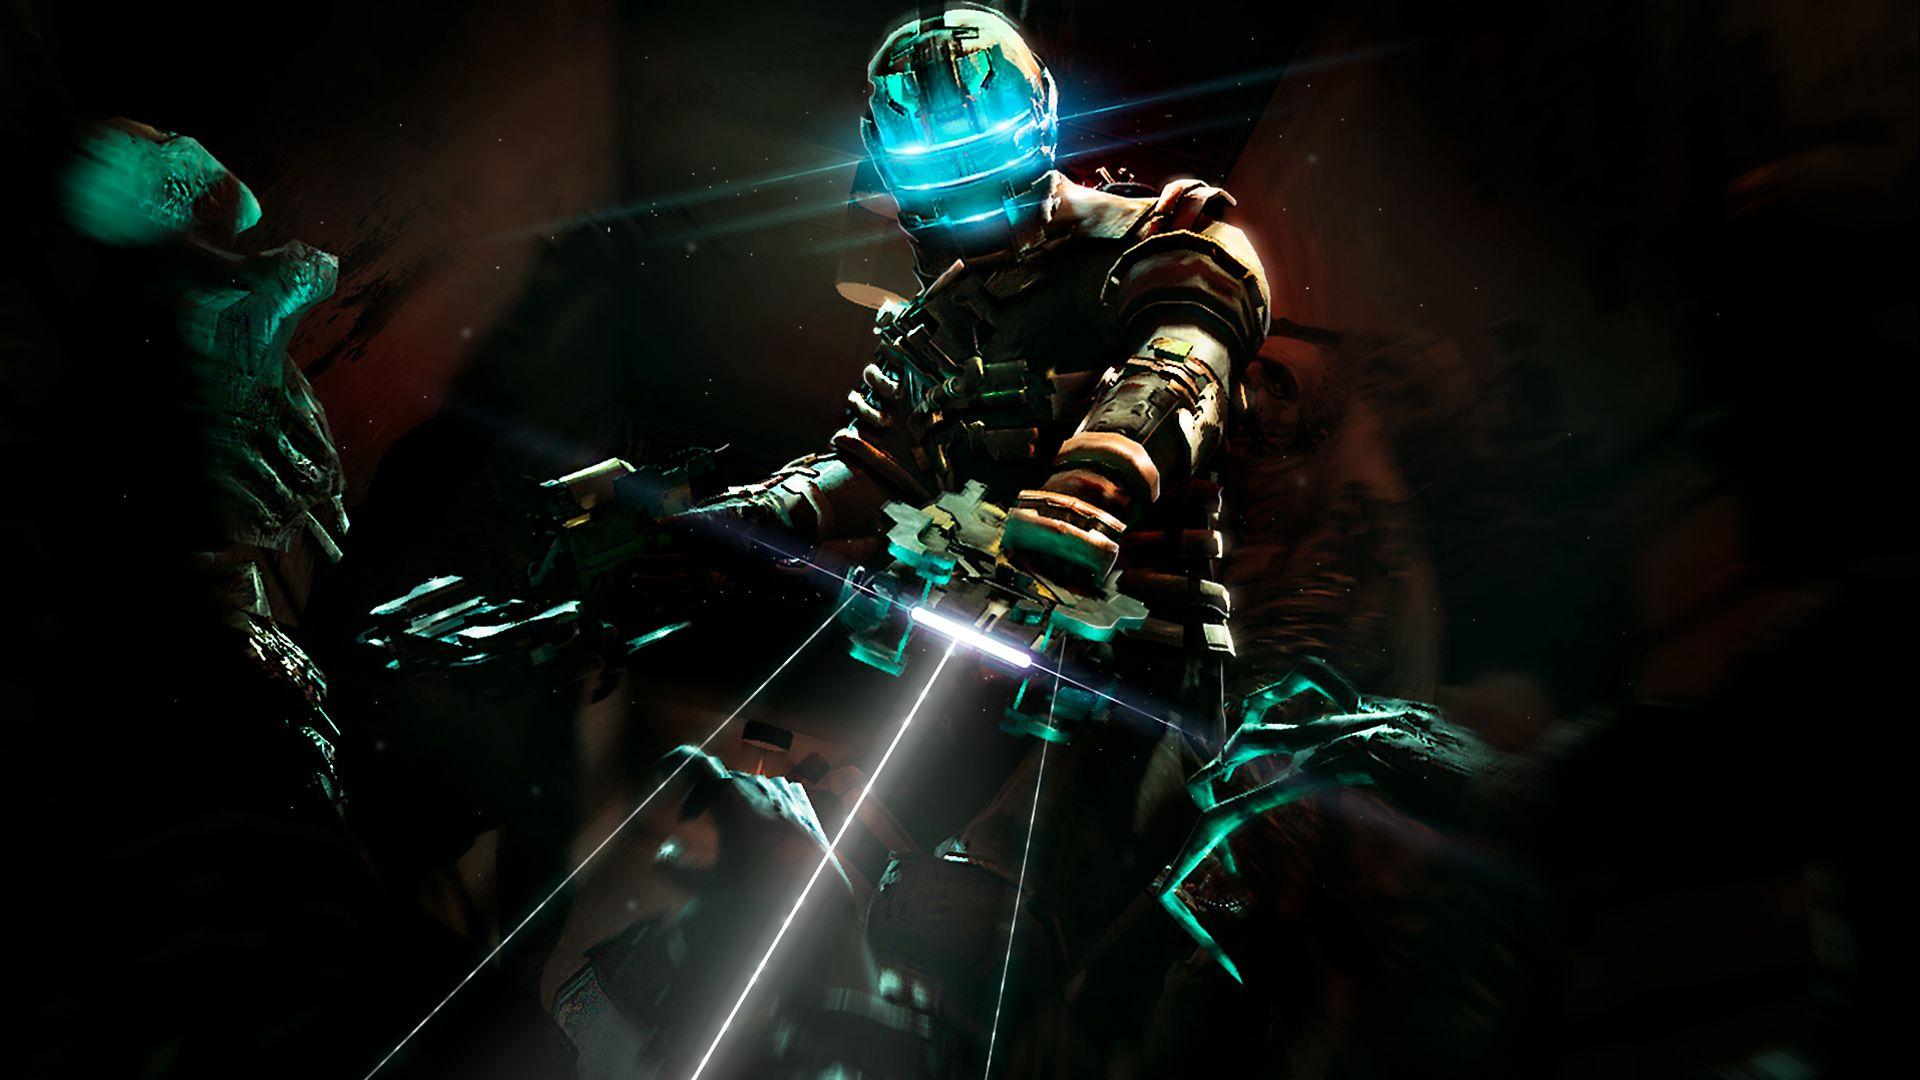 Dead space 3 wallpapers wallpaper cave - Dead space mobile wallpaper ...